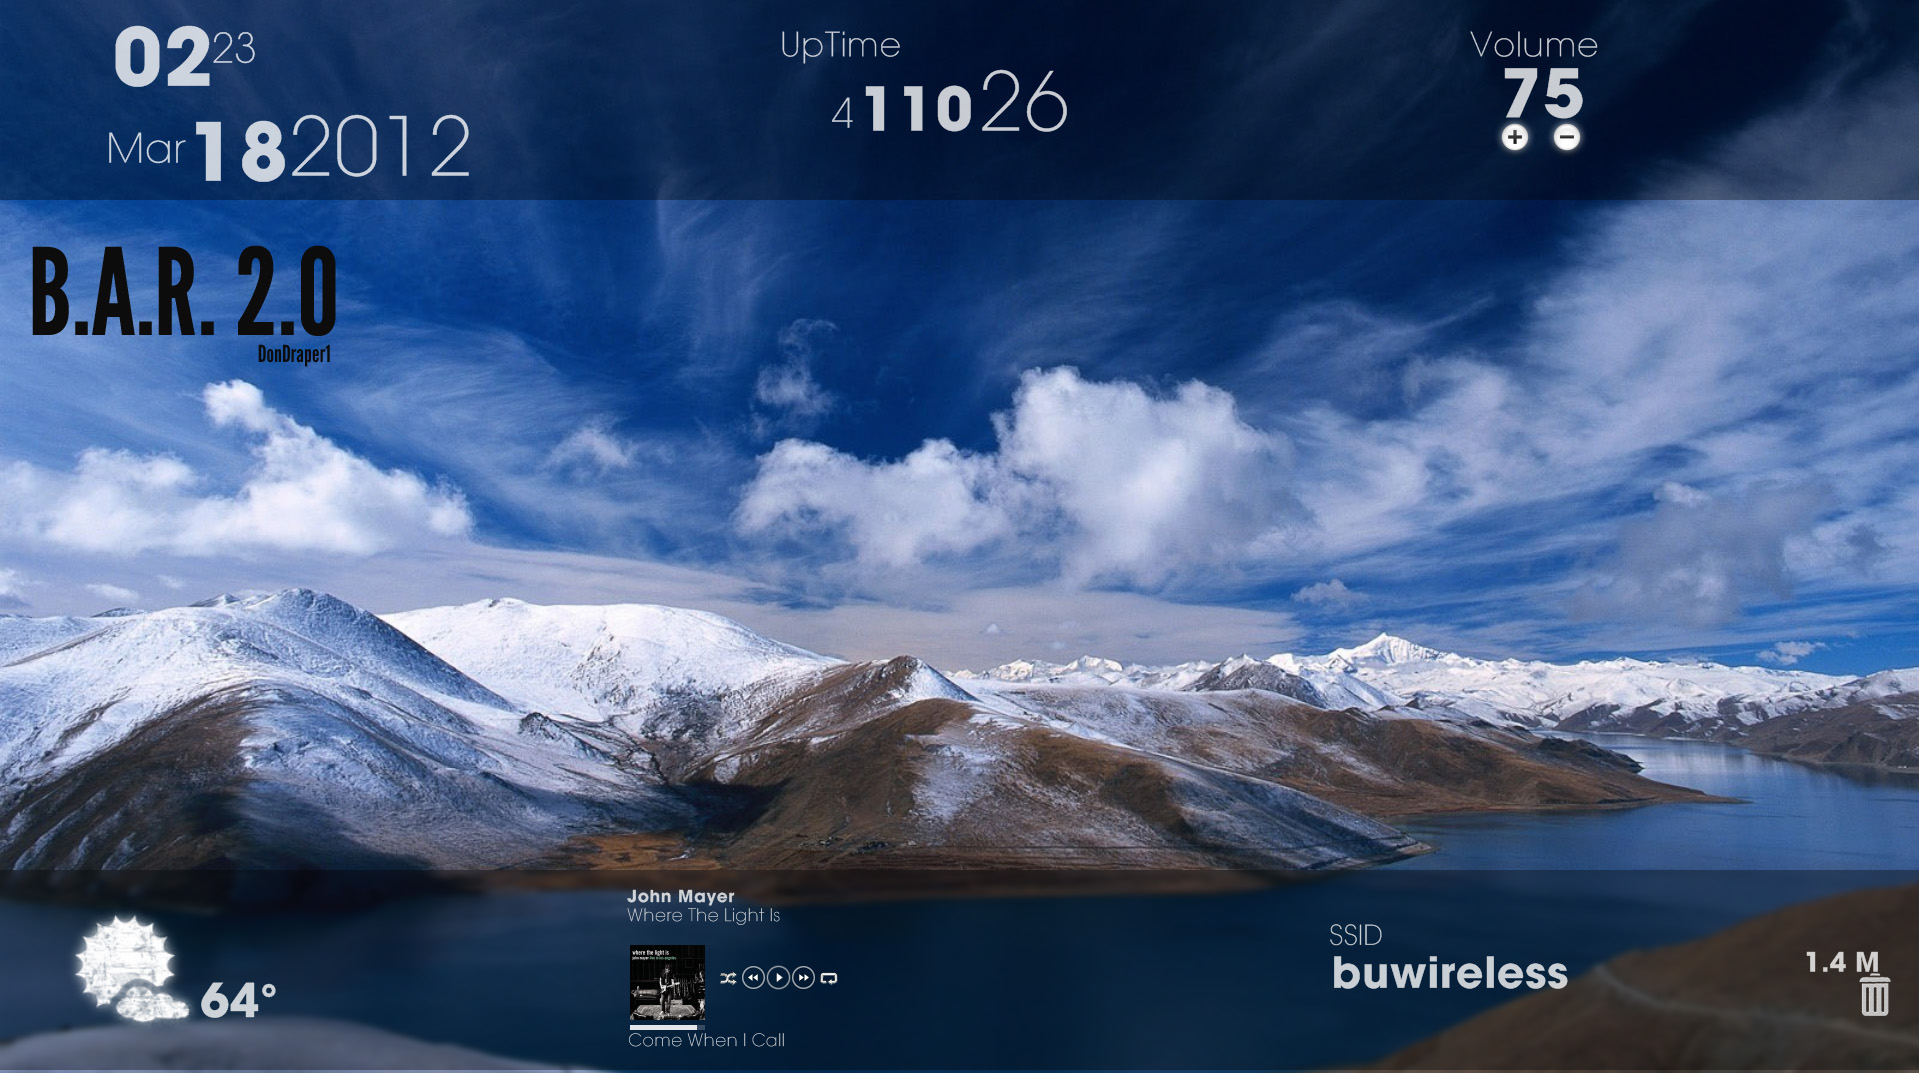 Cloudy mount rainmeter theme for windows 7 for Bureau windows 7 rainmeter